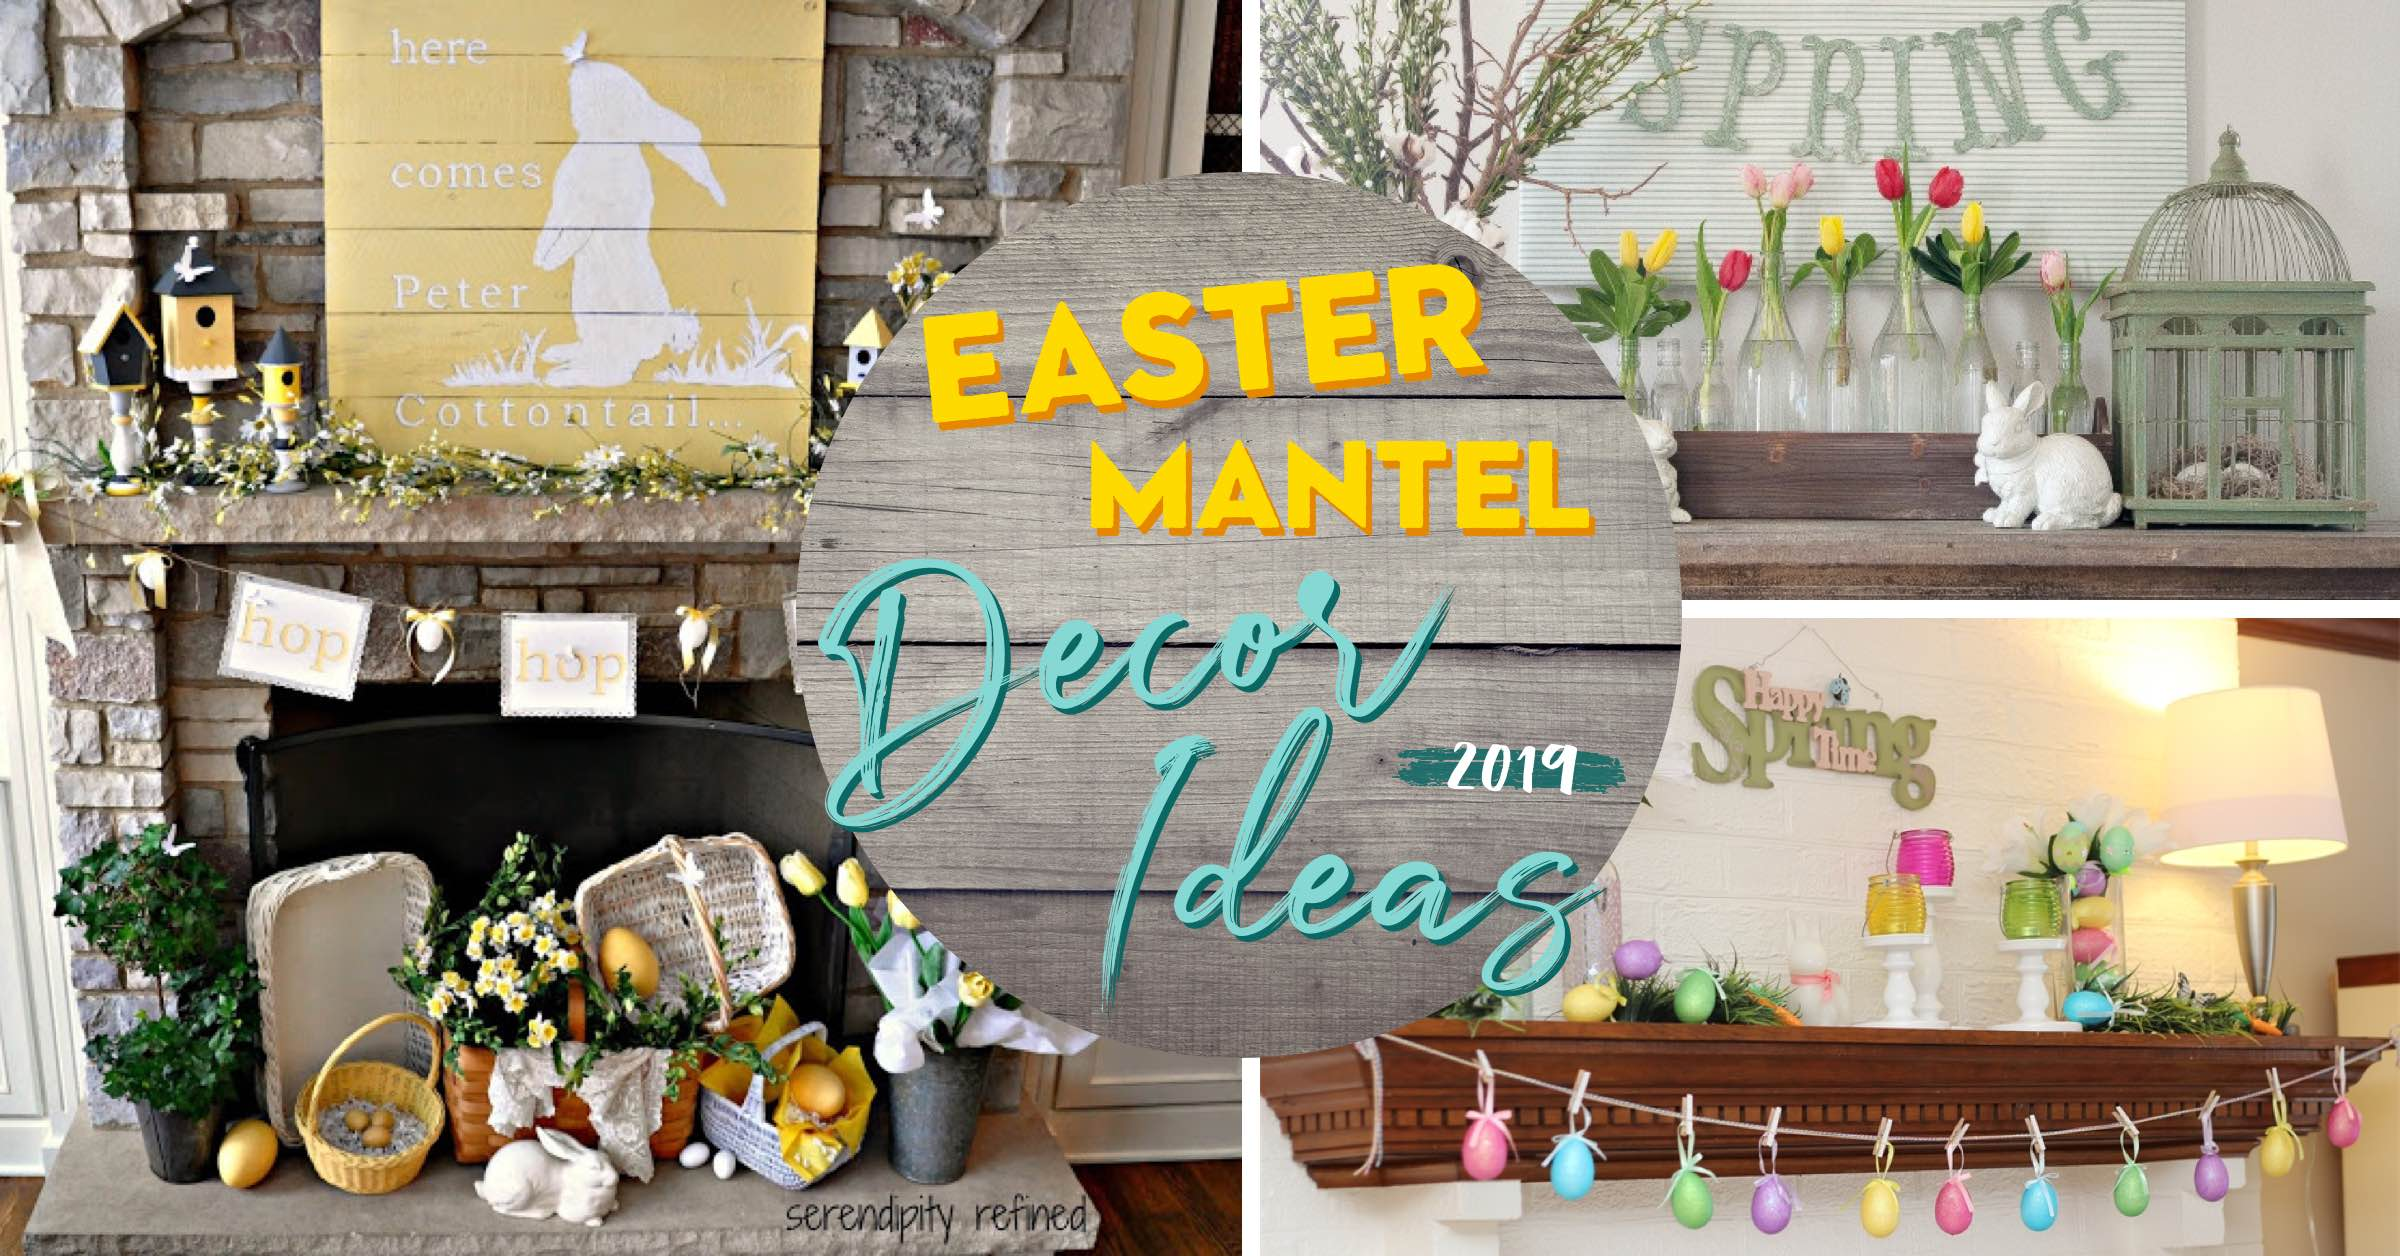 19 Easter Mantel Decor Ideas That Will Make Things Festive Perfect